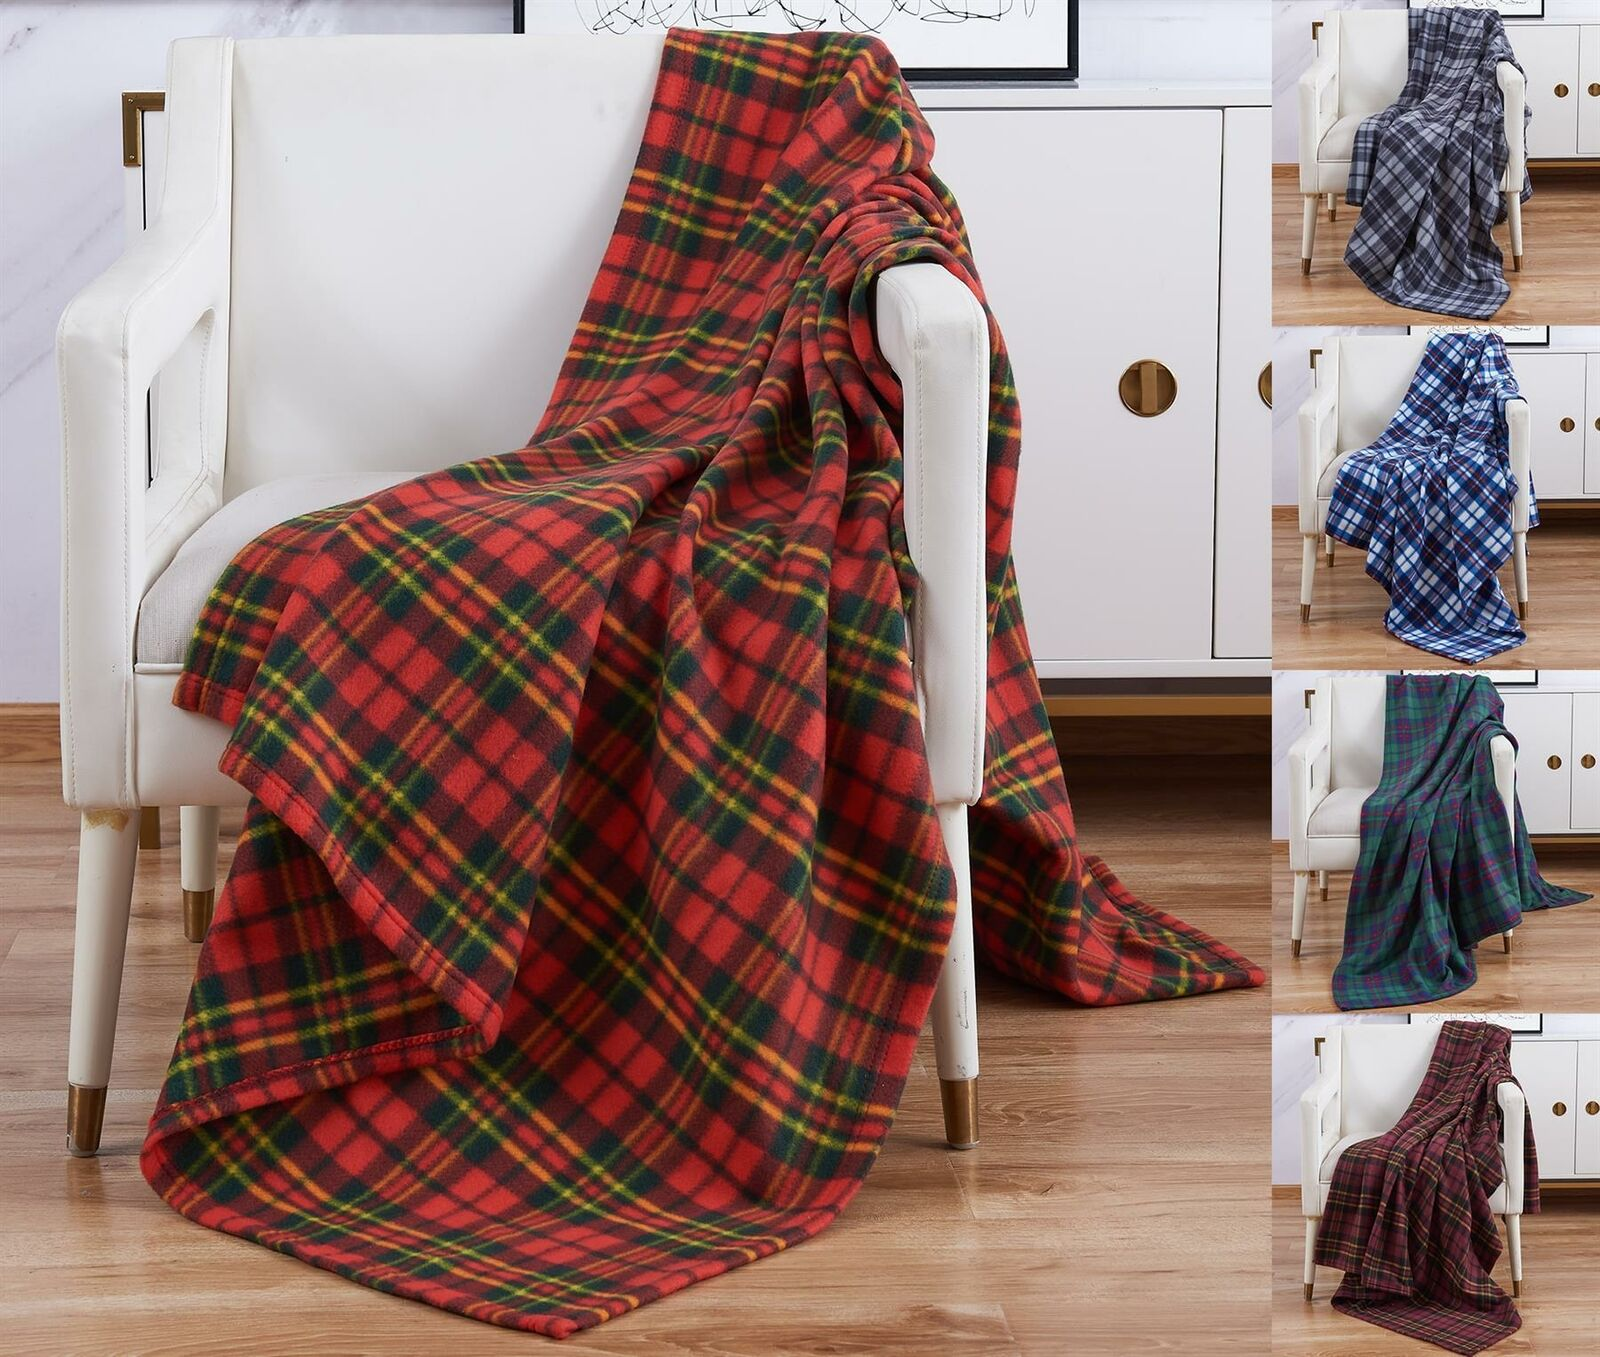 Soft Warm 200x240cm King Size Tartan Check Sofa Throw Bed Fleece Travel Blanket Eur 14 78: throw blankets for sofa